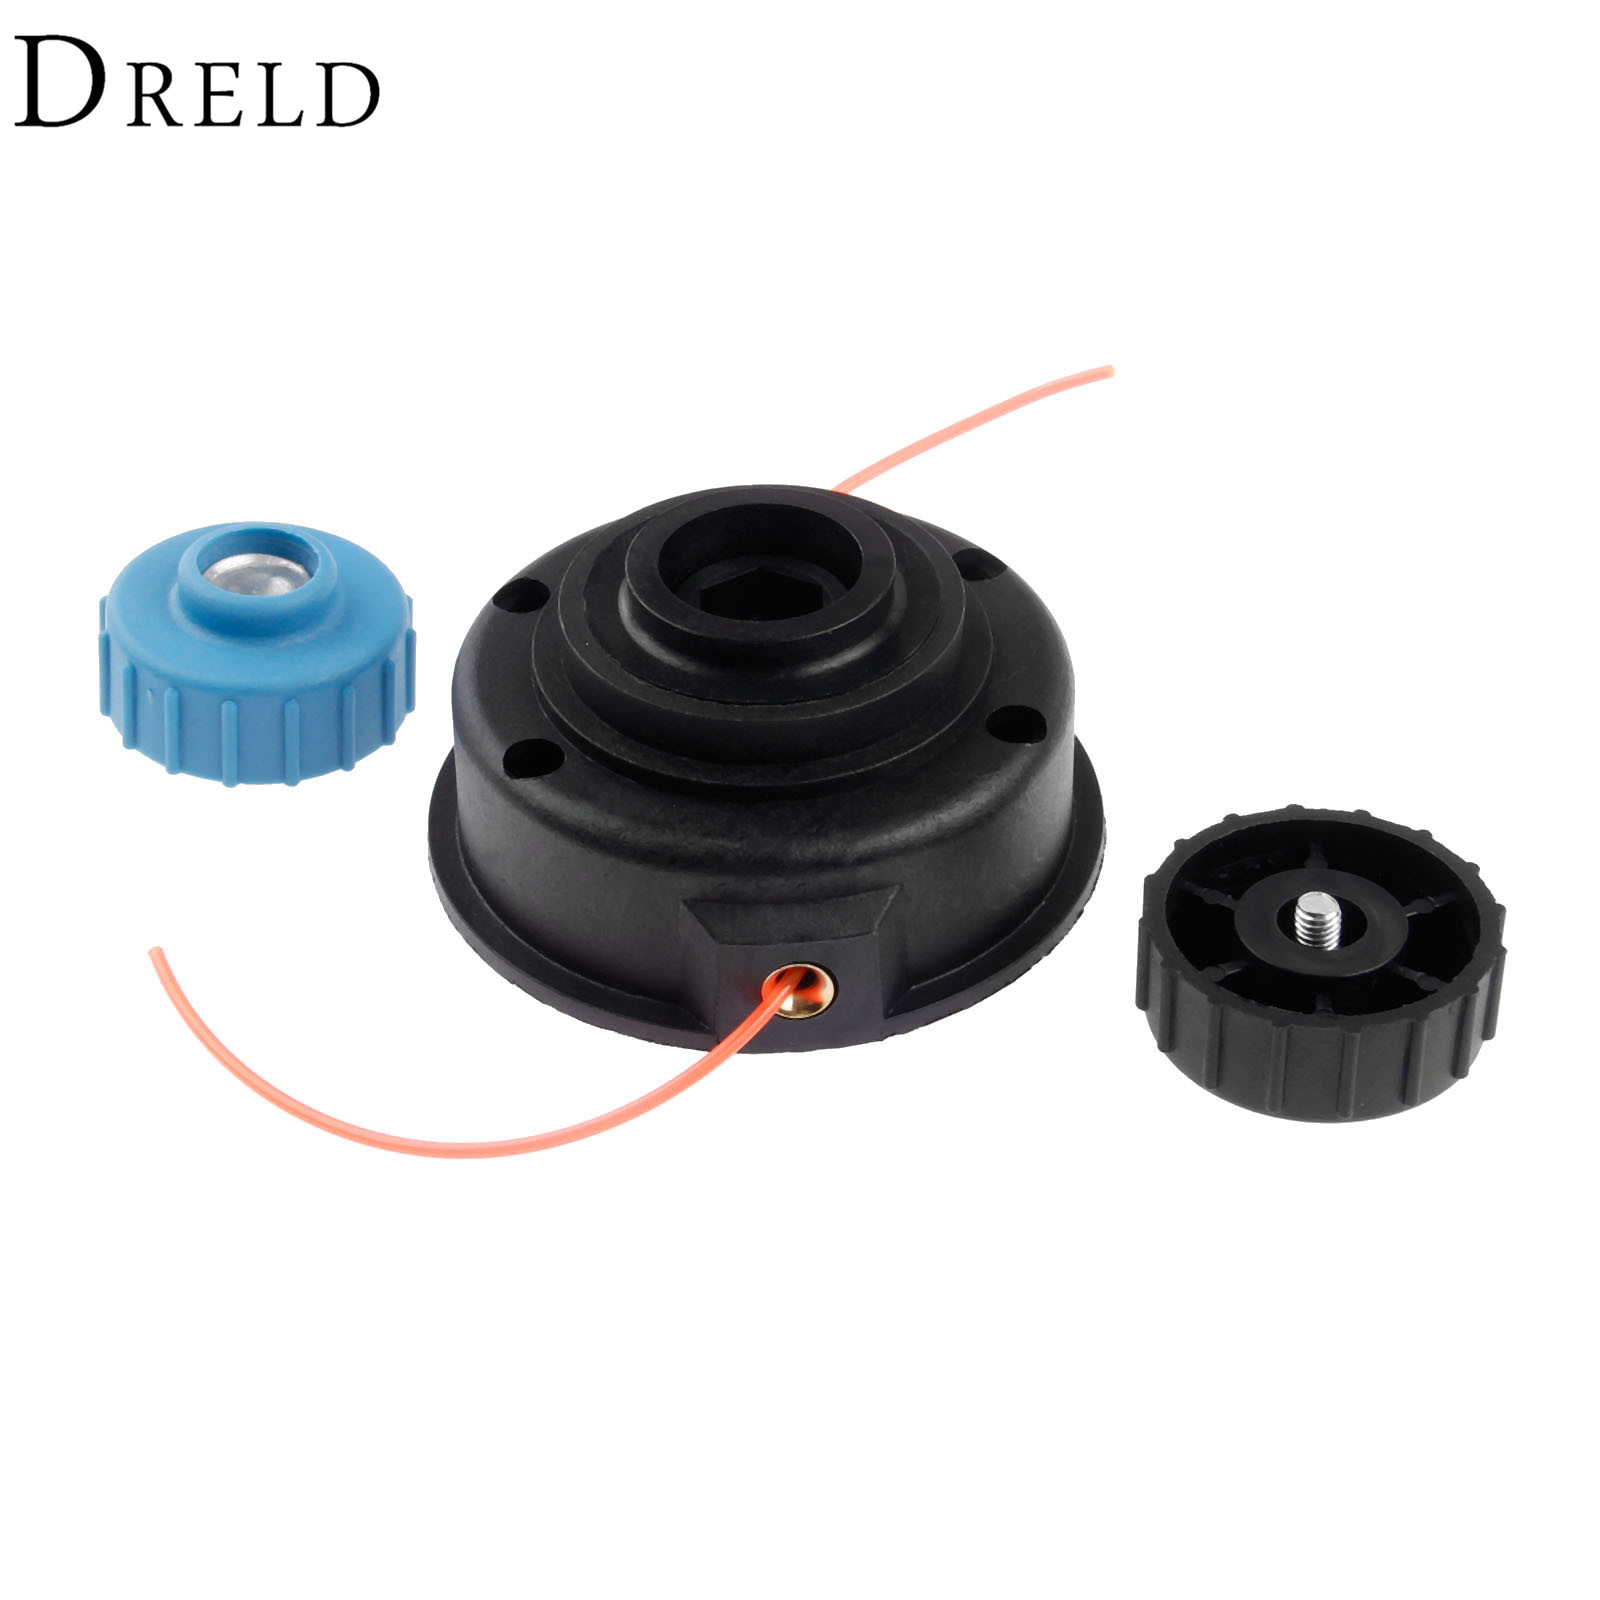 DRELD Black Plastic String Trimmer Bump Head Line Brush Cutter Head Lawn Mower Accessories for Strimmer Garden Tools Accessories neoclima slim 30s